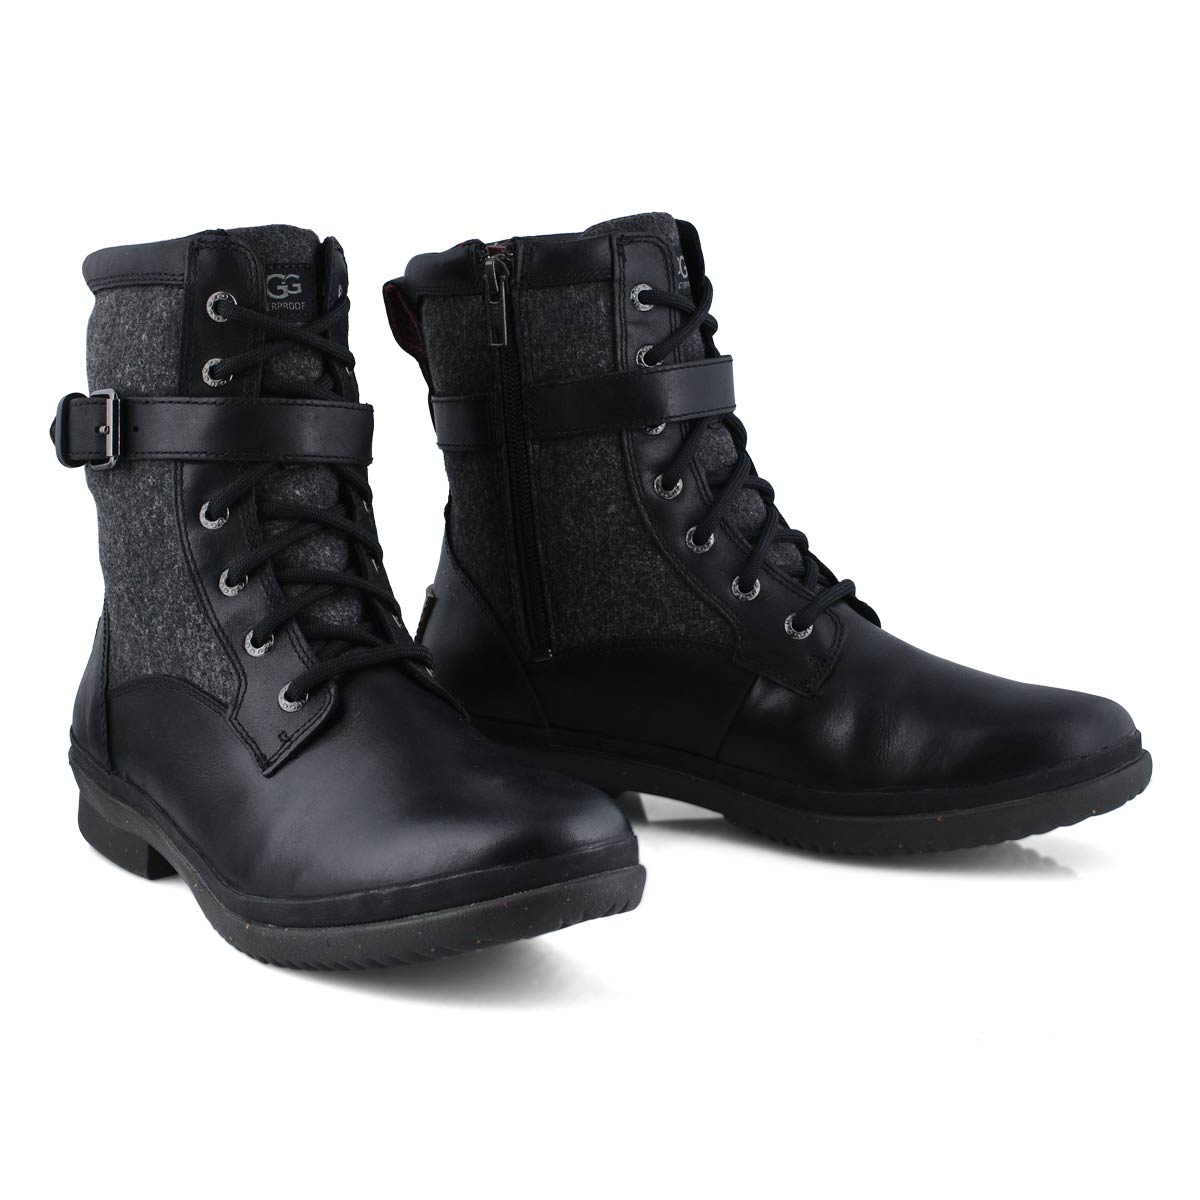 Lds Kesey blk lthr wtpf lace up boot